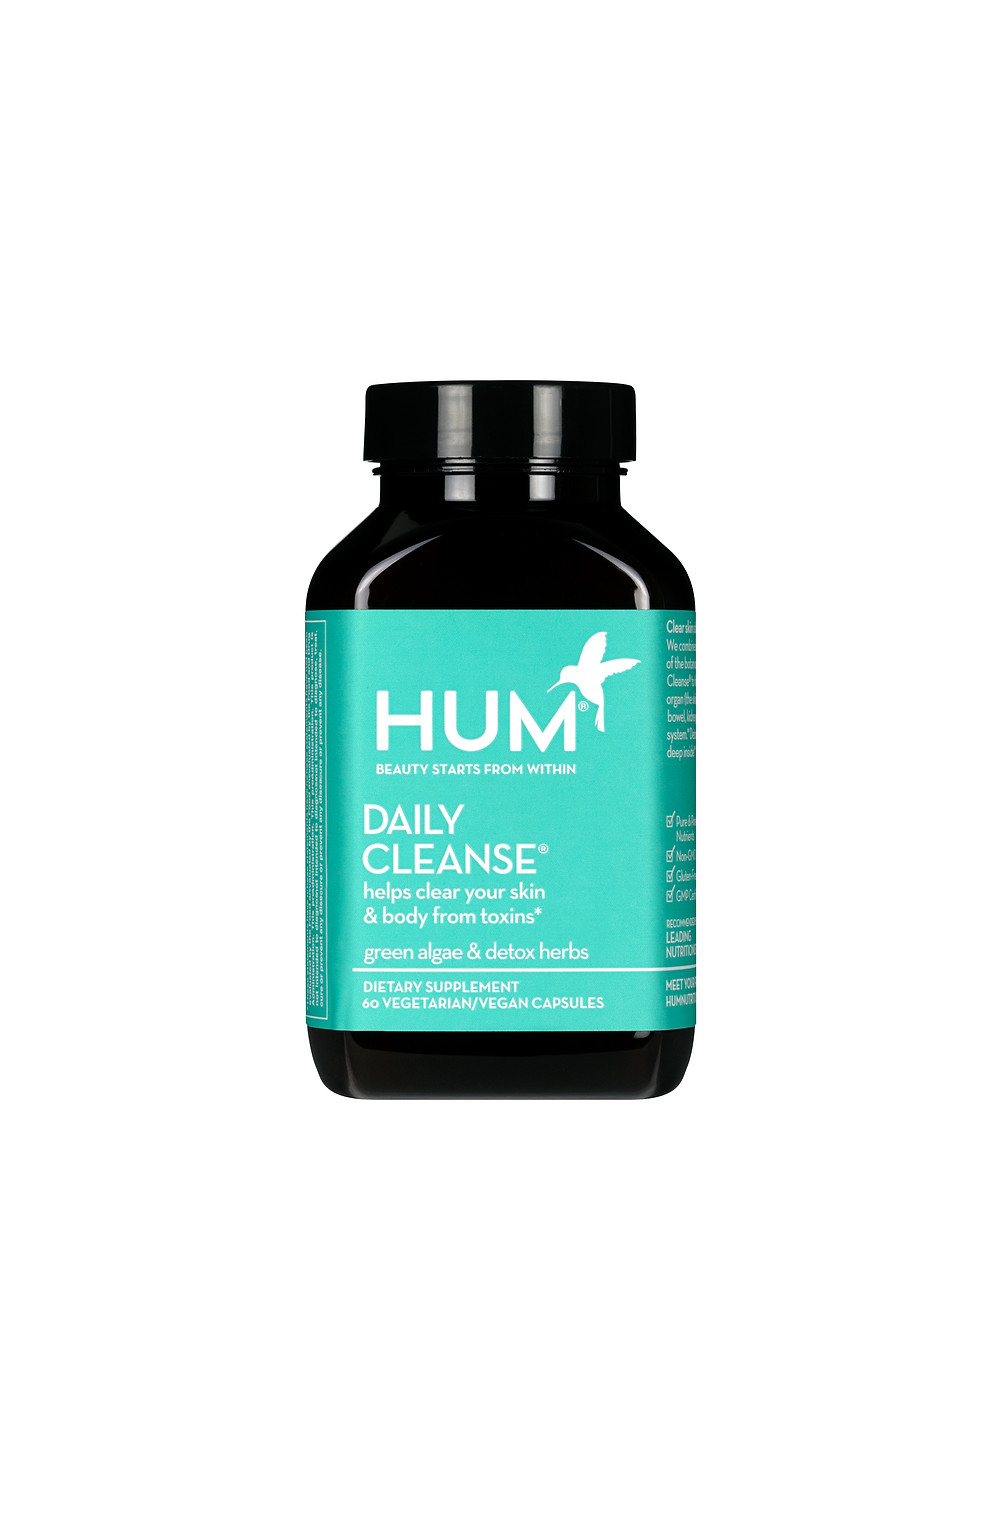 Daily Cleanse for Liver Detox